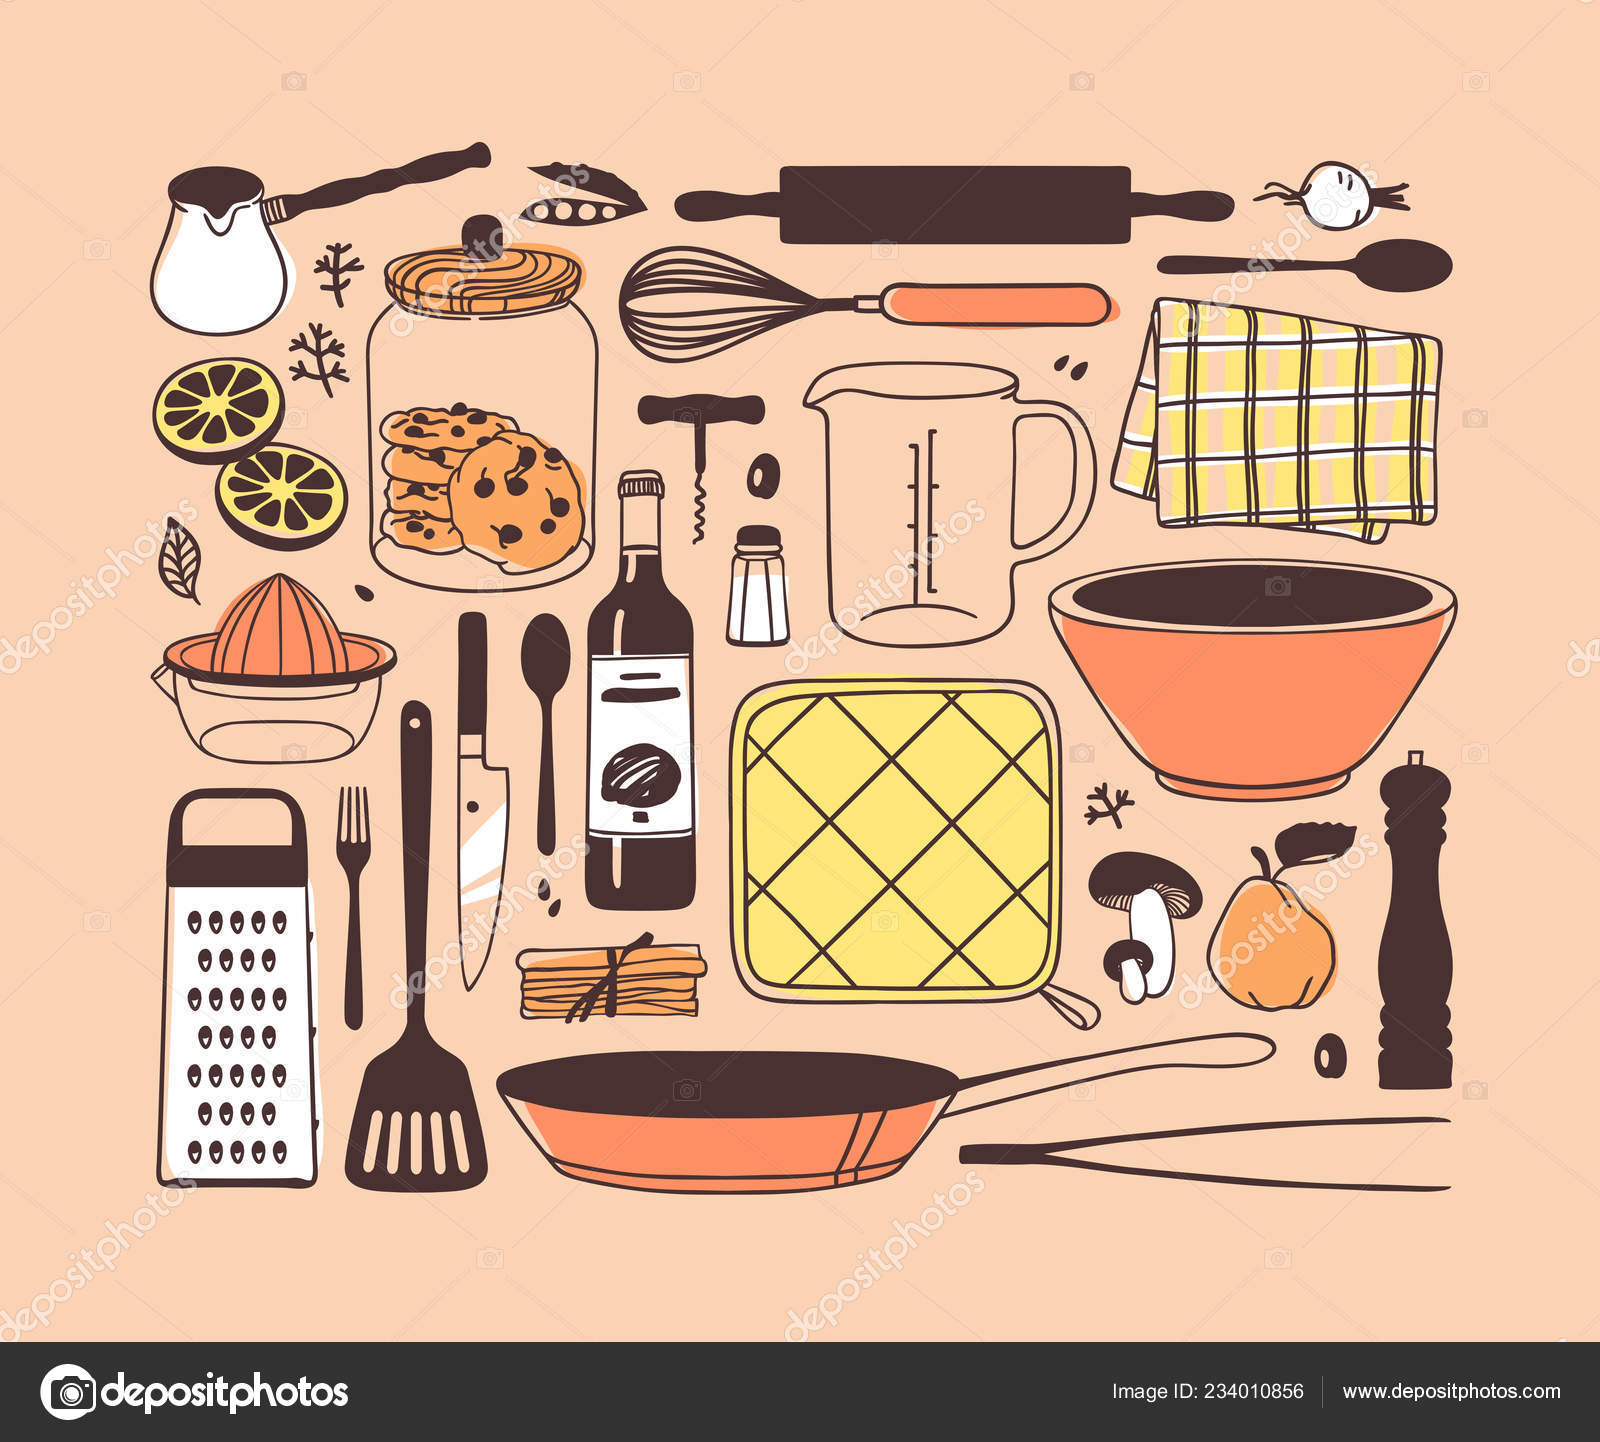 Hand Drawn Illustration Cooking Tools Dishes Food Creative Ink Art Vector Image By C Pomolchim Vector Stock 234010856